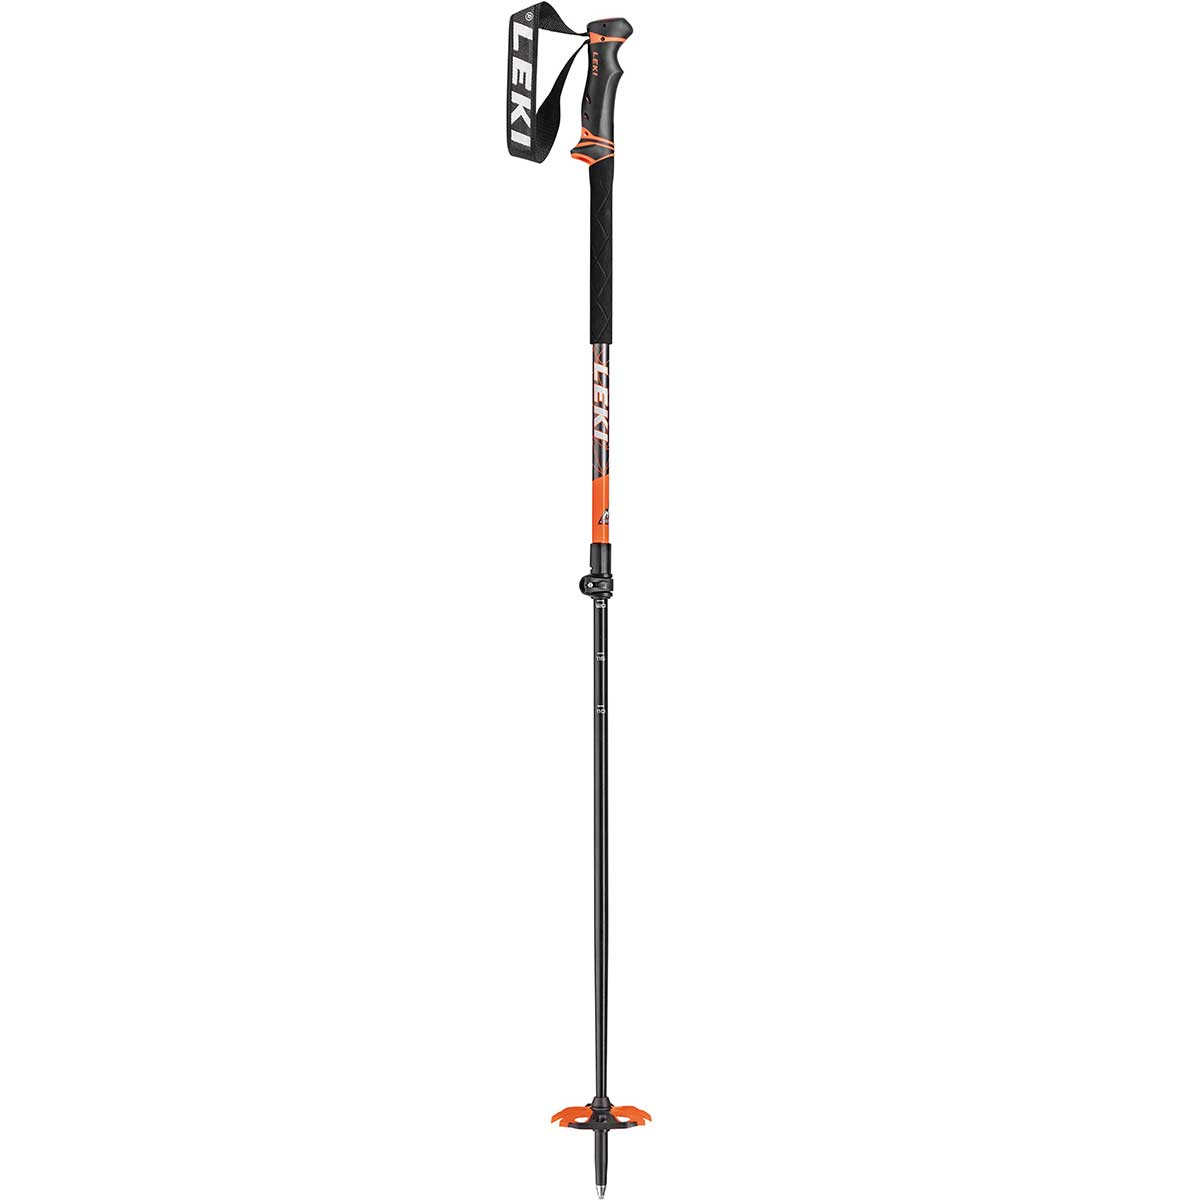 Leki Helicon ski pole in black and orange